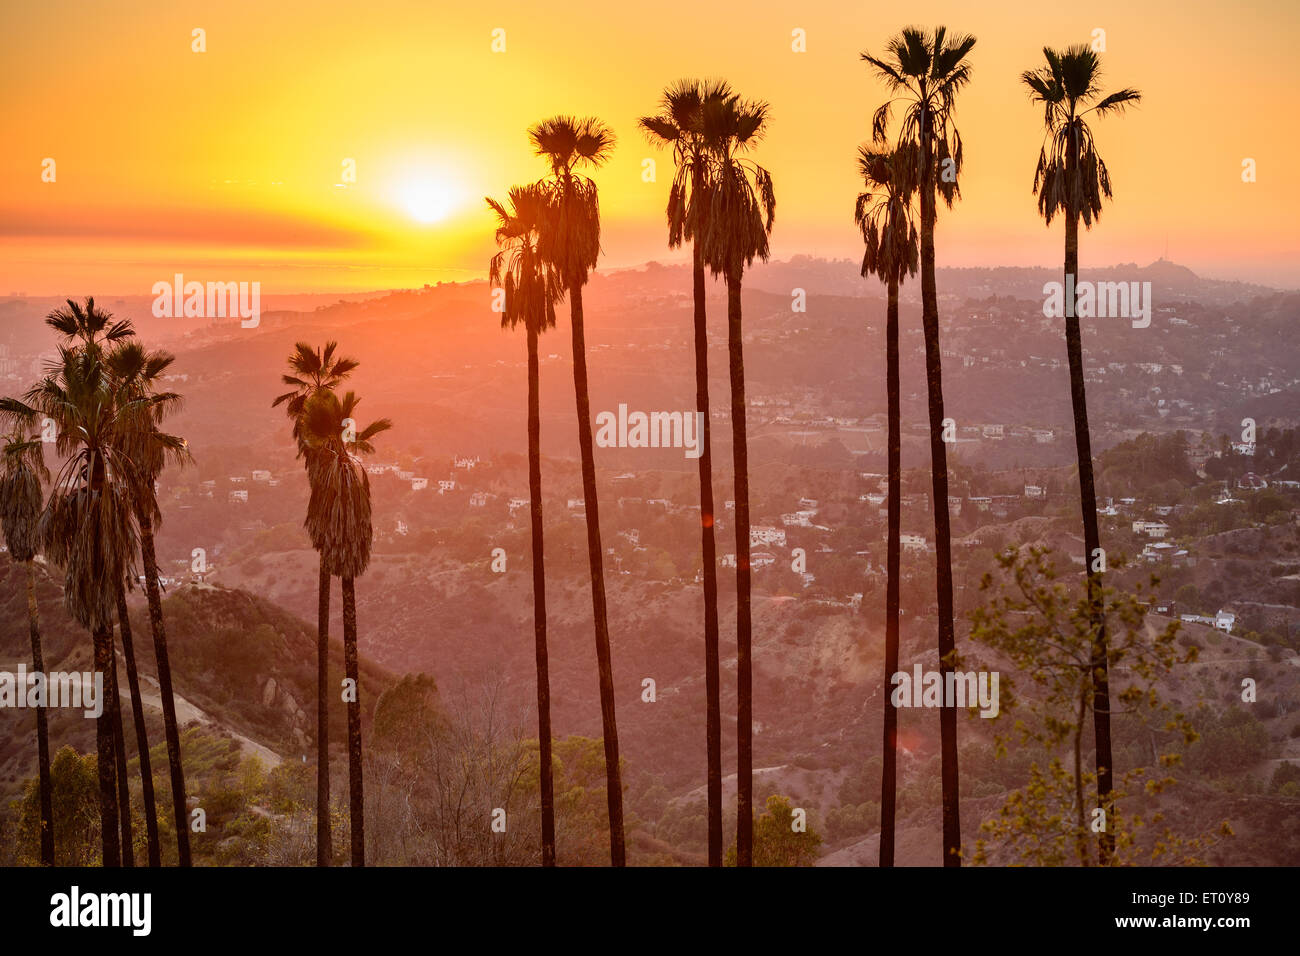 Griffith Park, Los Angeles, Californie, USA. Photo Stock